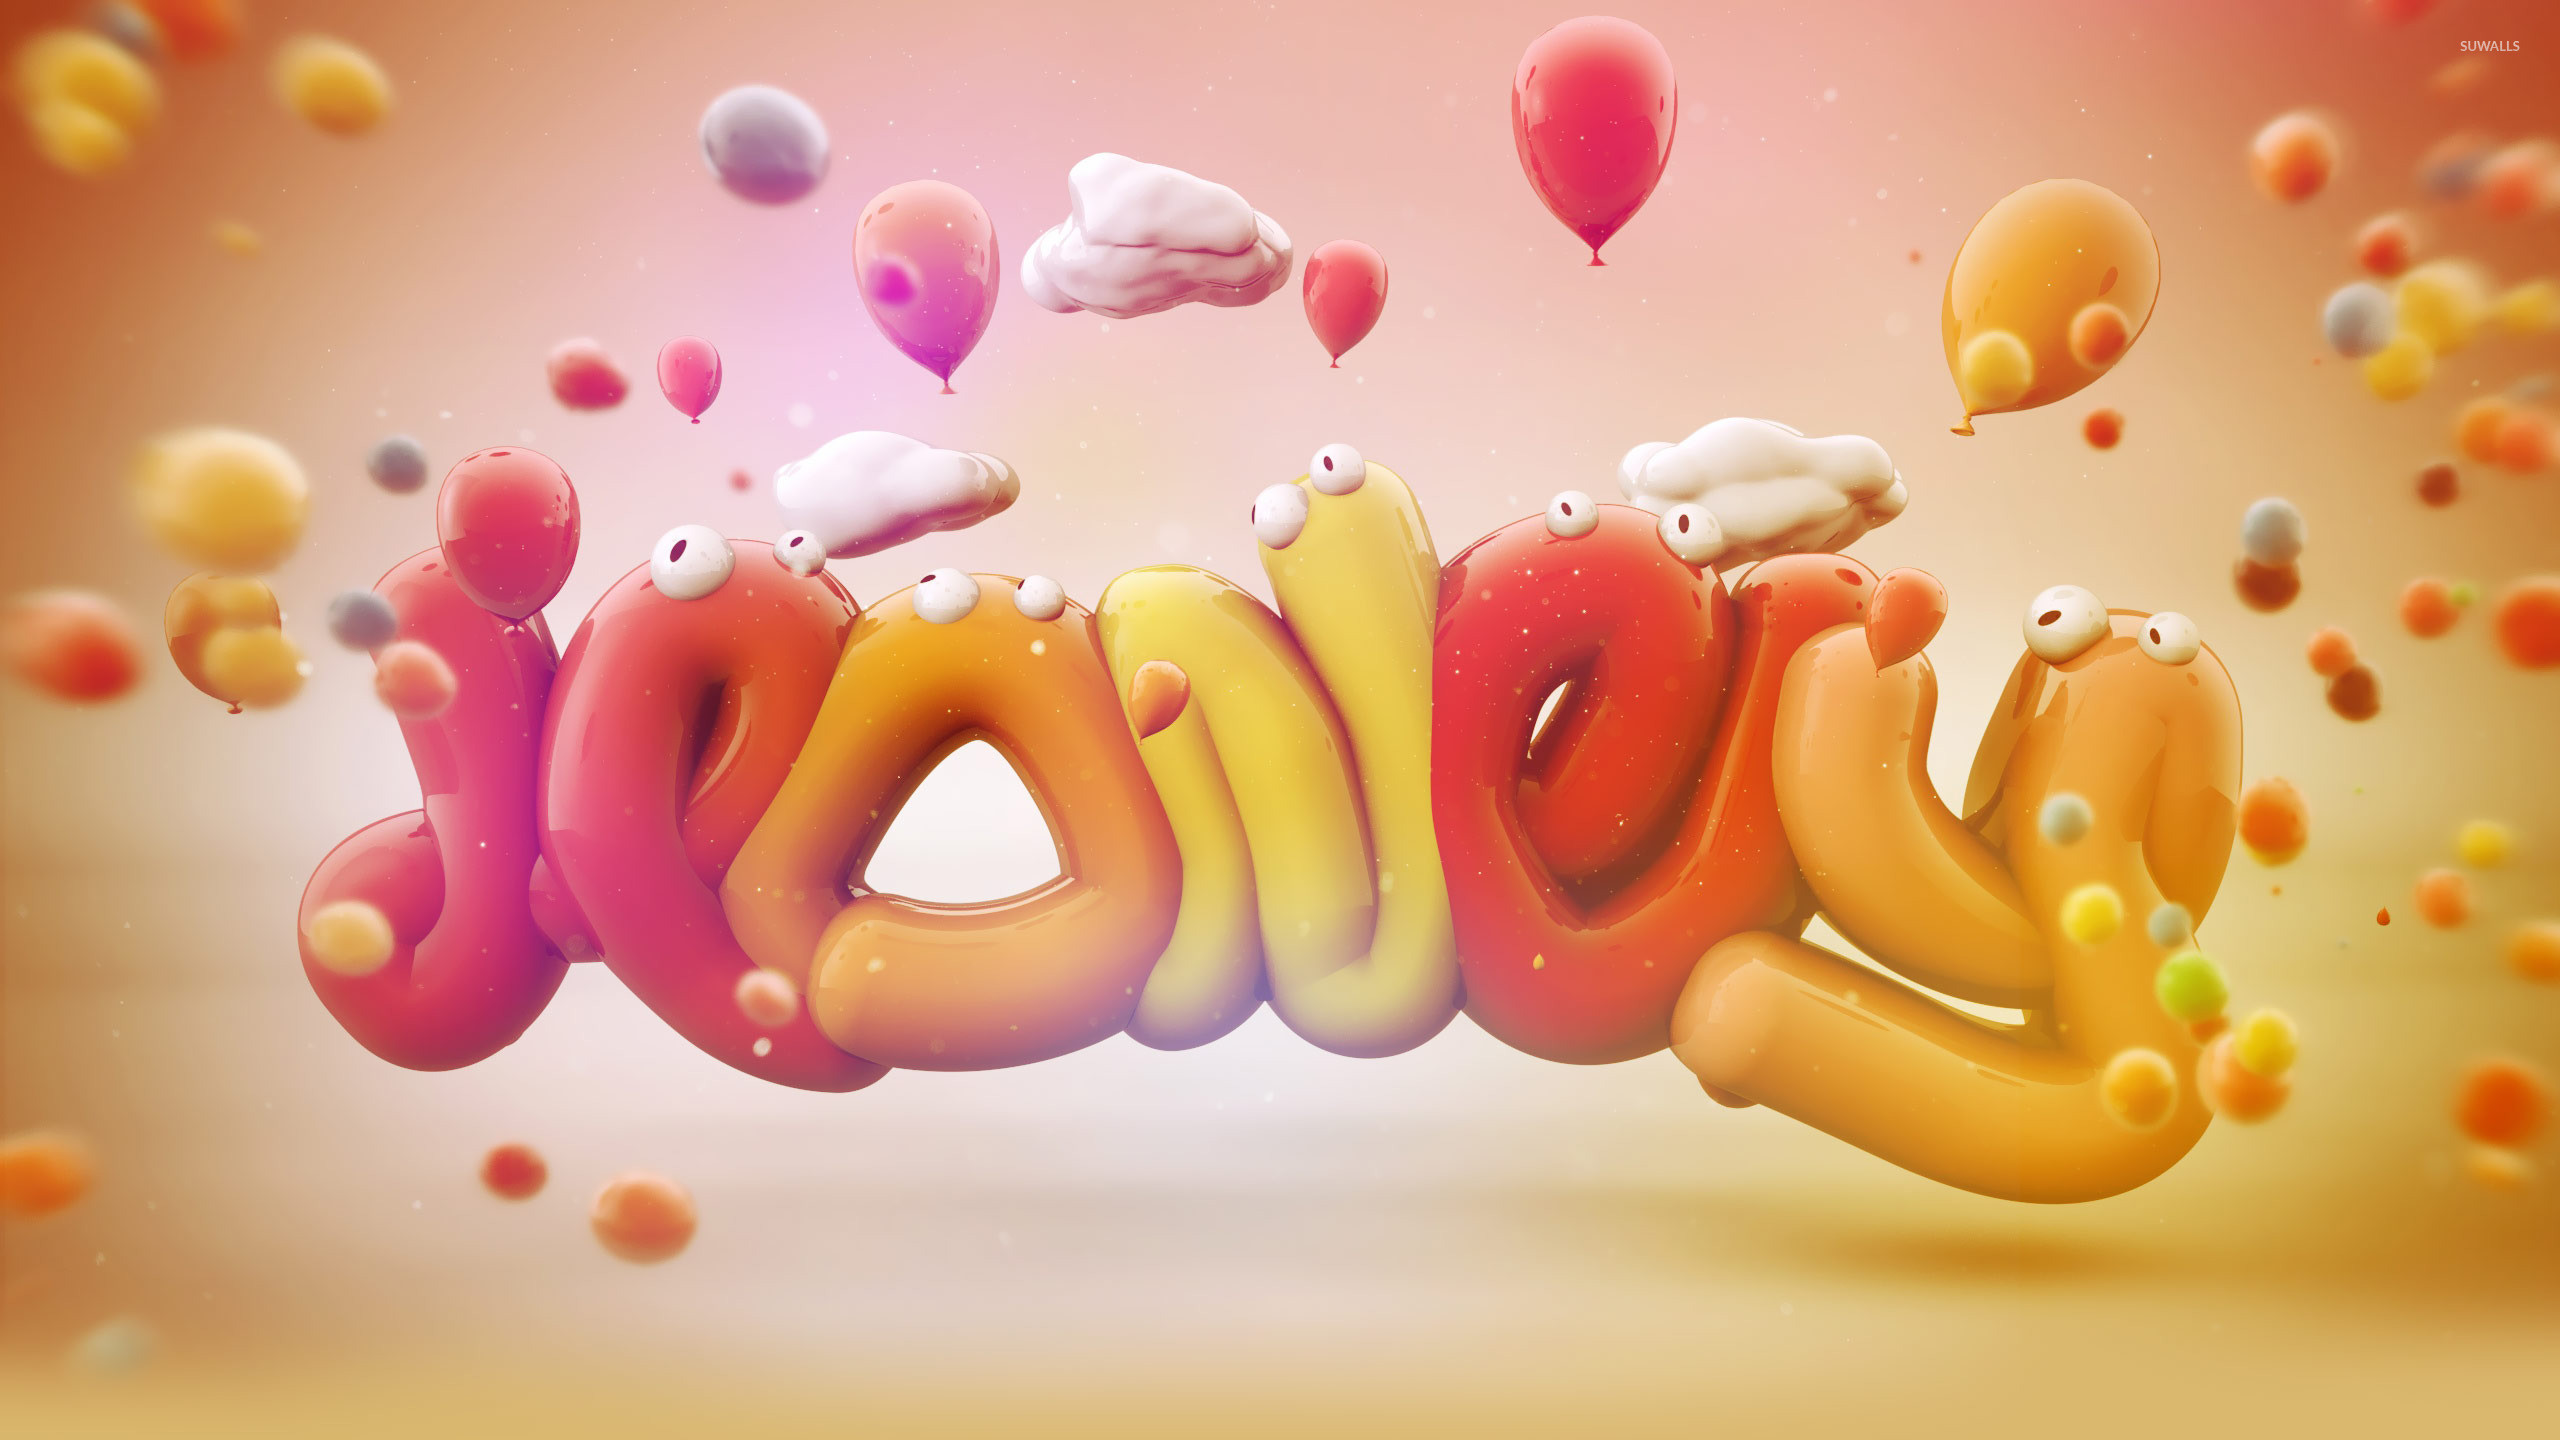 … jelly worms wallpaper typography wallpapers 19228 …